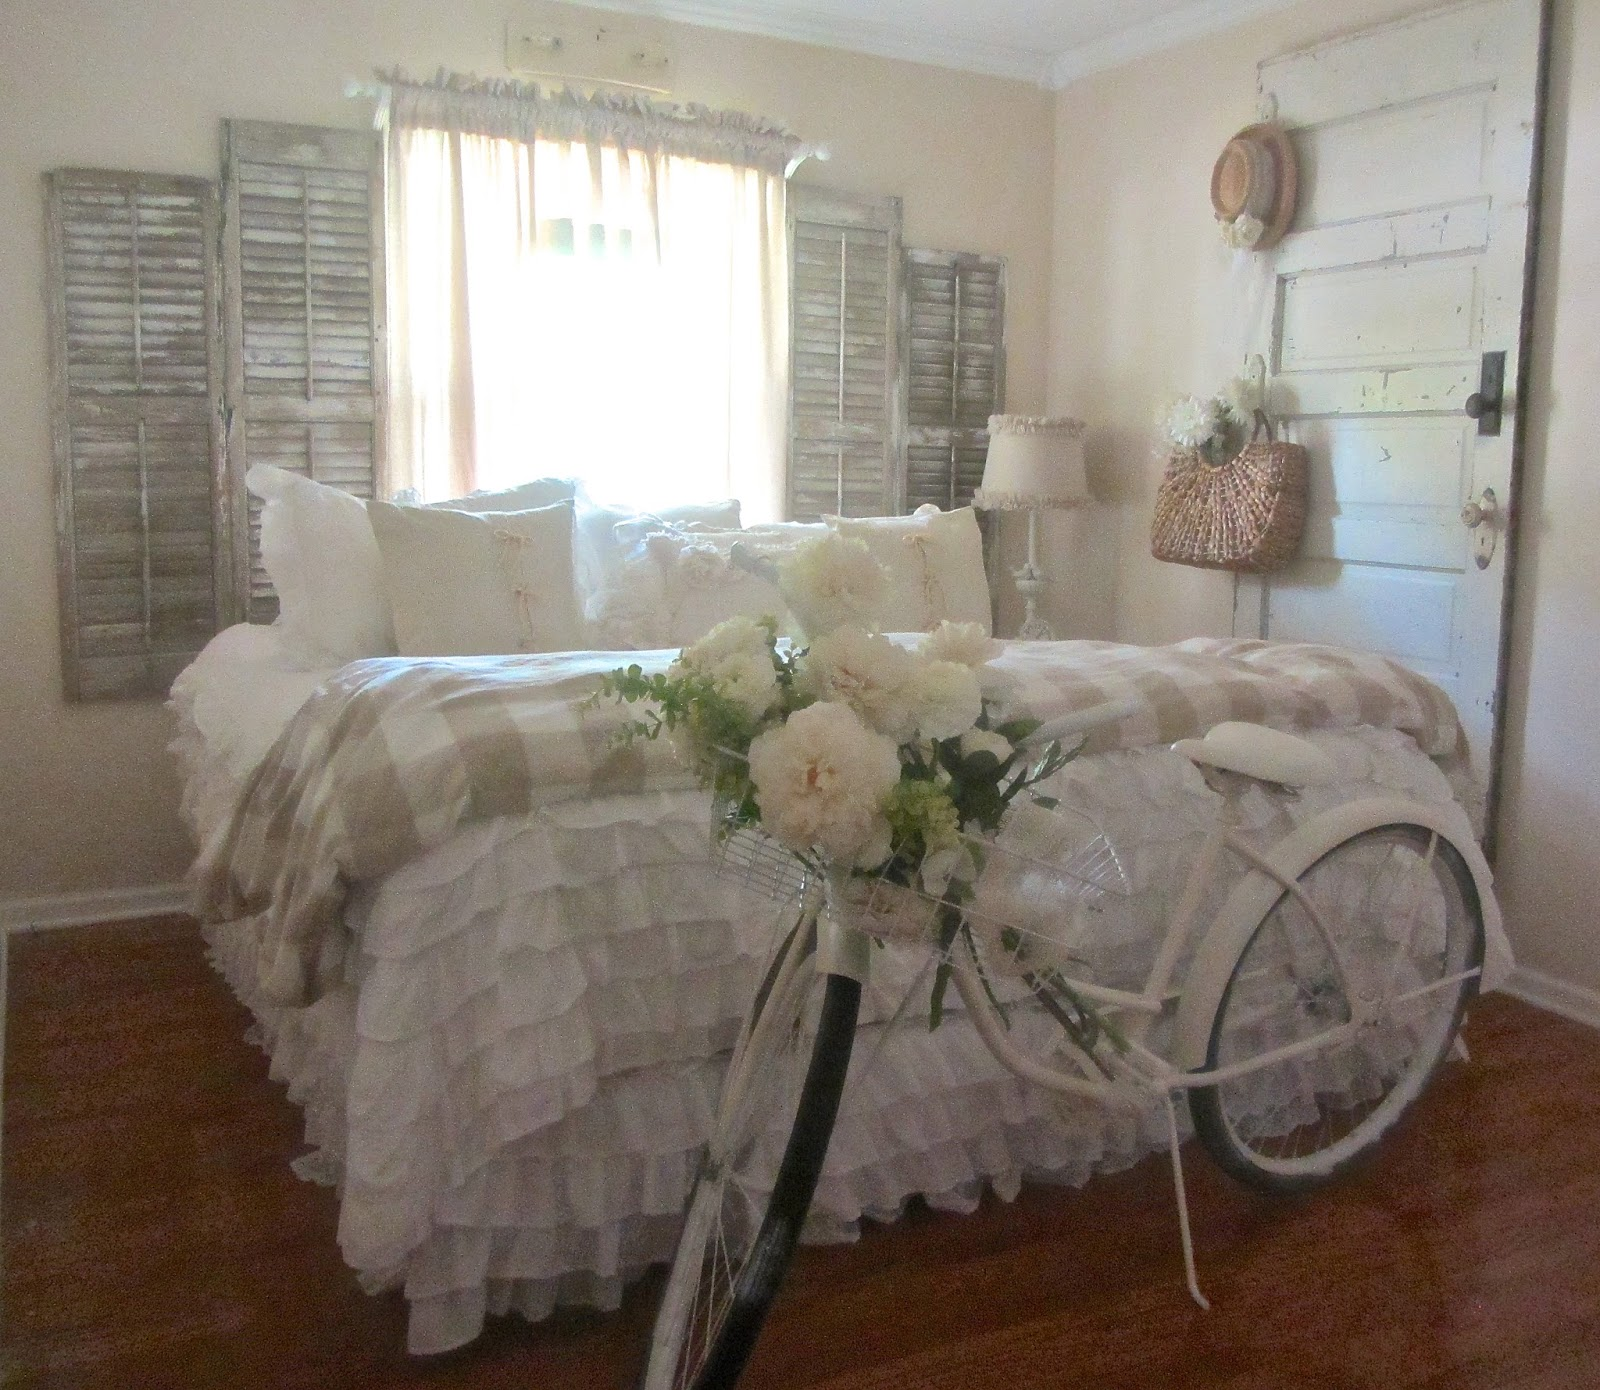 Junk chic cottage update on guest room and new treasures - Decorar habitacion vintage ...